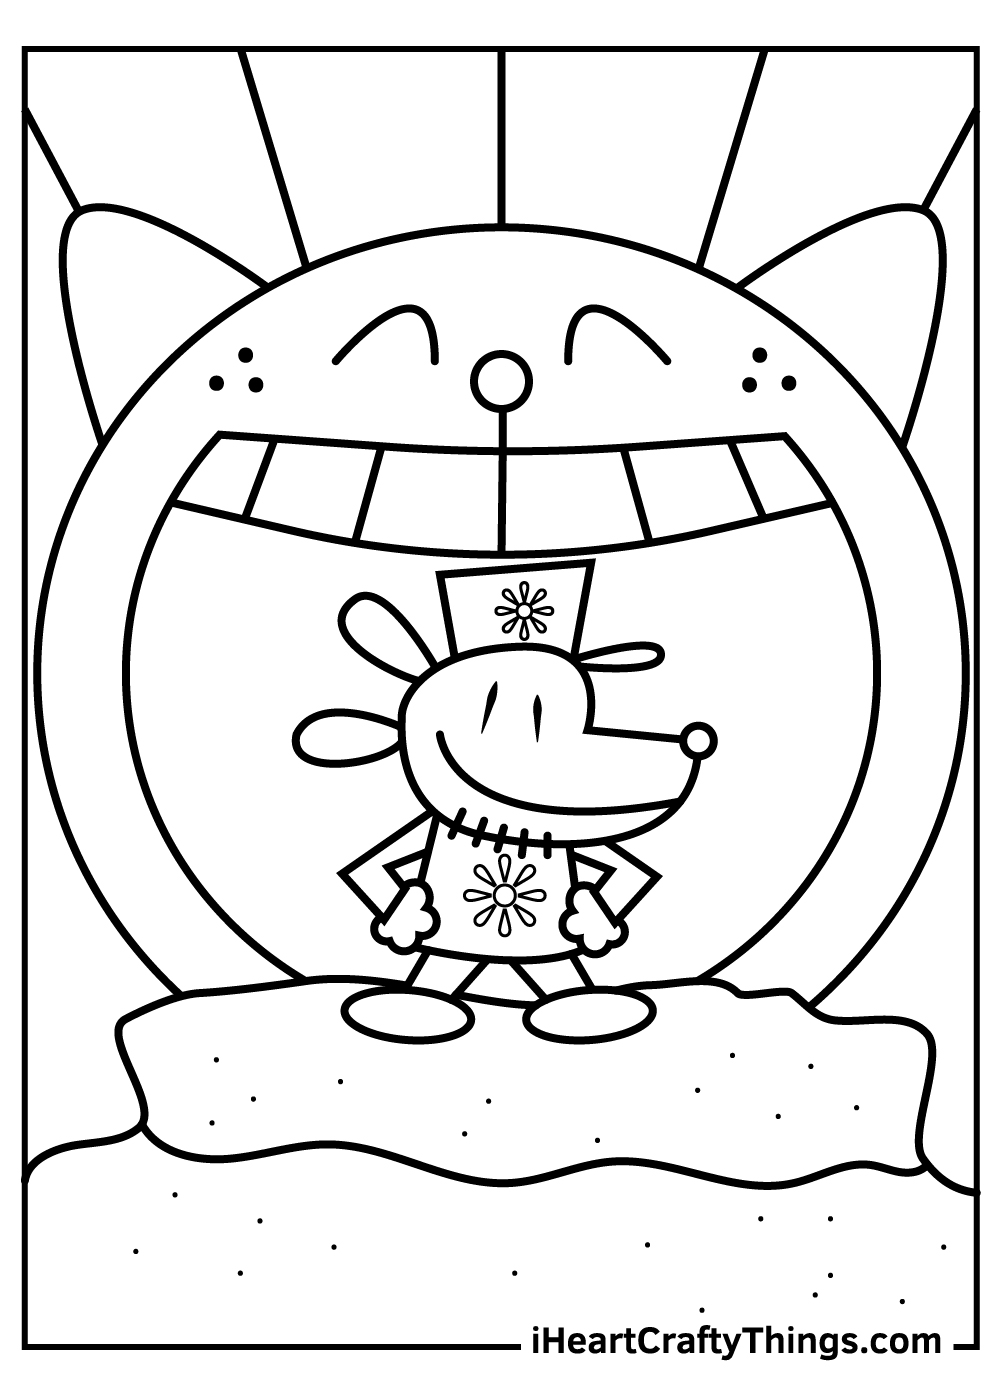 new dog man coloring pages free download